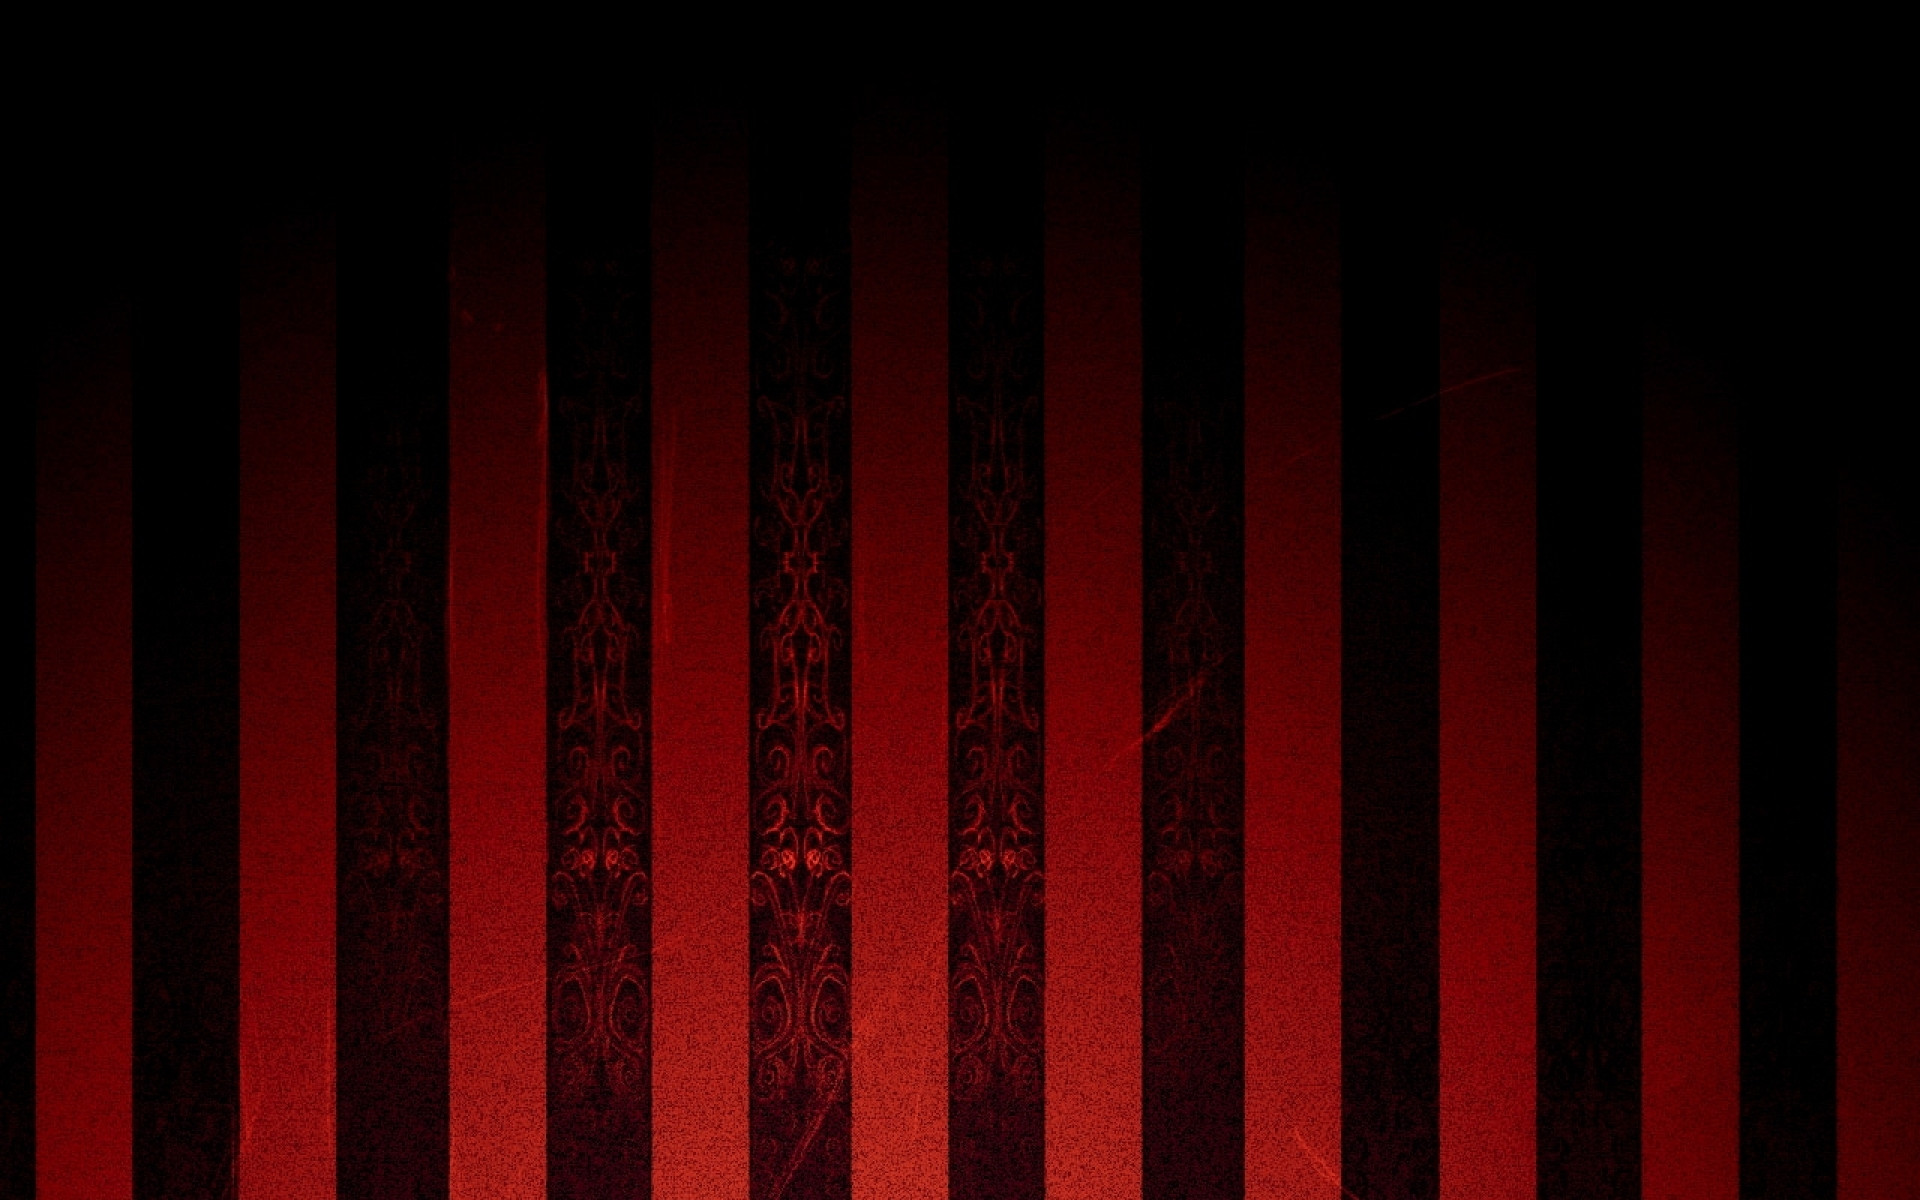 Hd wallpaper red and black - Red Black Wallpaper Hd 1080p Black And Red Wallpaper Cool Wallpaper